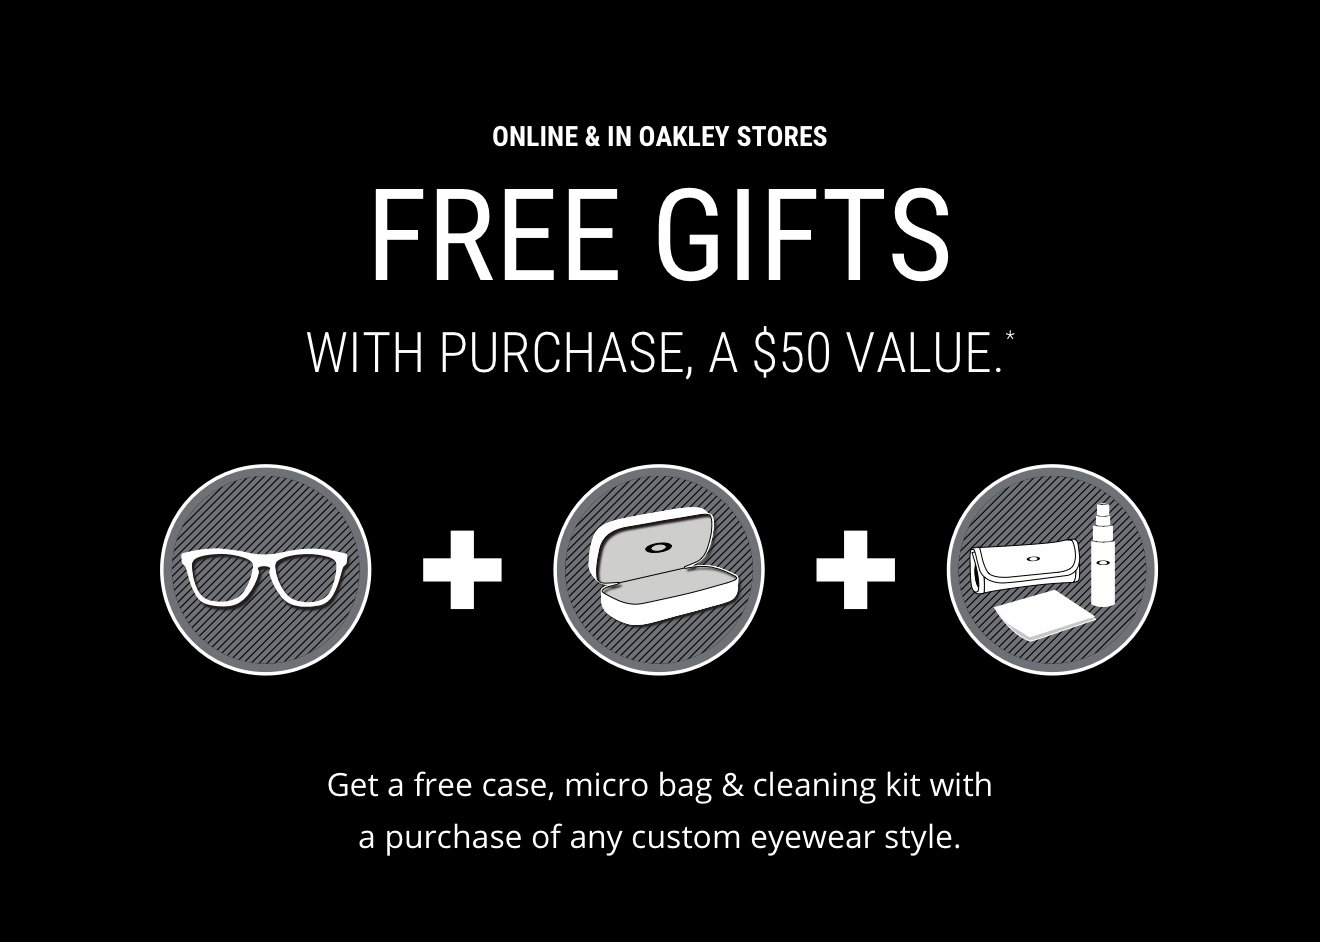 FREE GIFTS WITH PURCHASE, A $50 VALUE